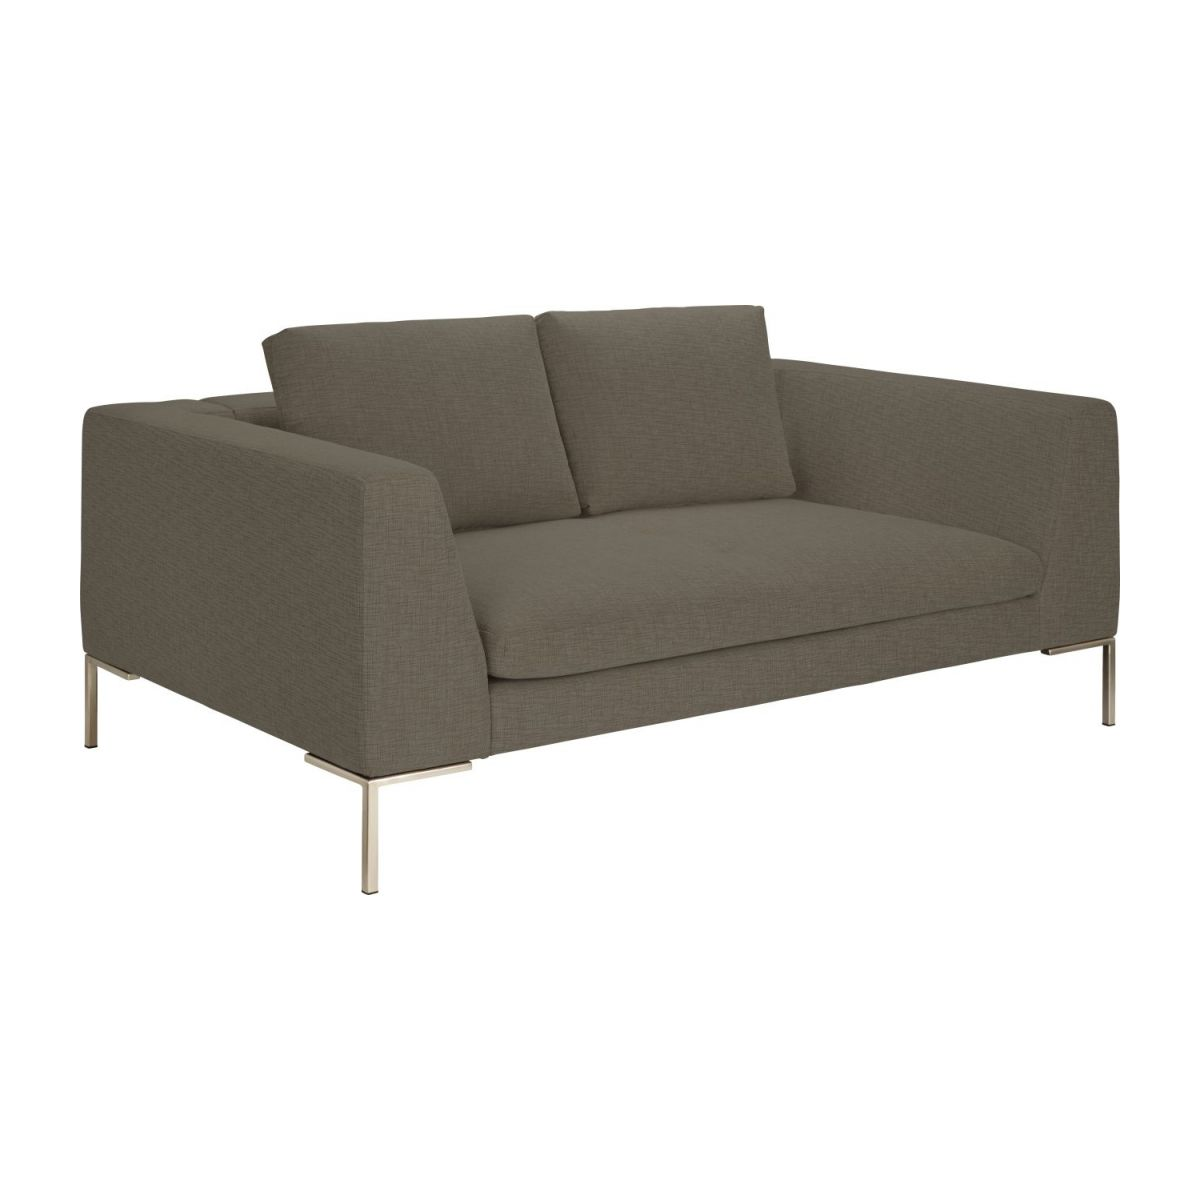 2 seater sofa in Ancio fabric, river rock n°1